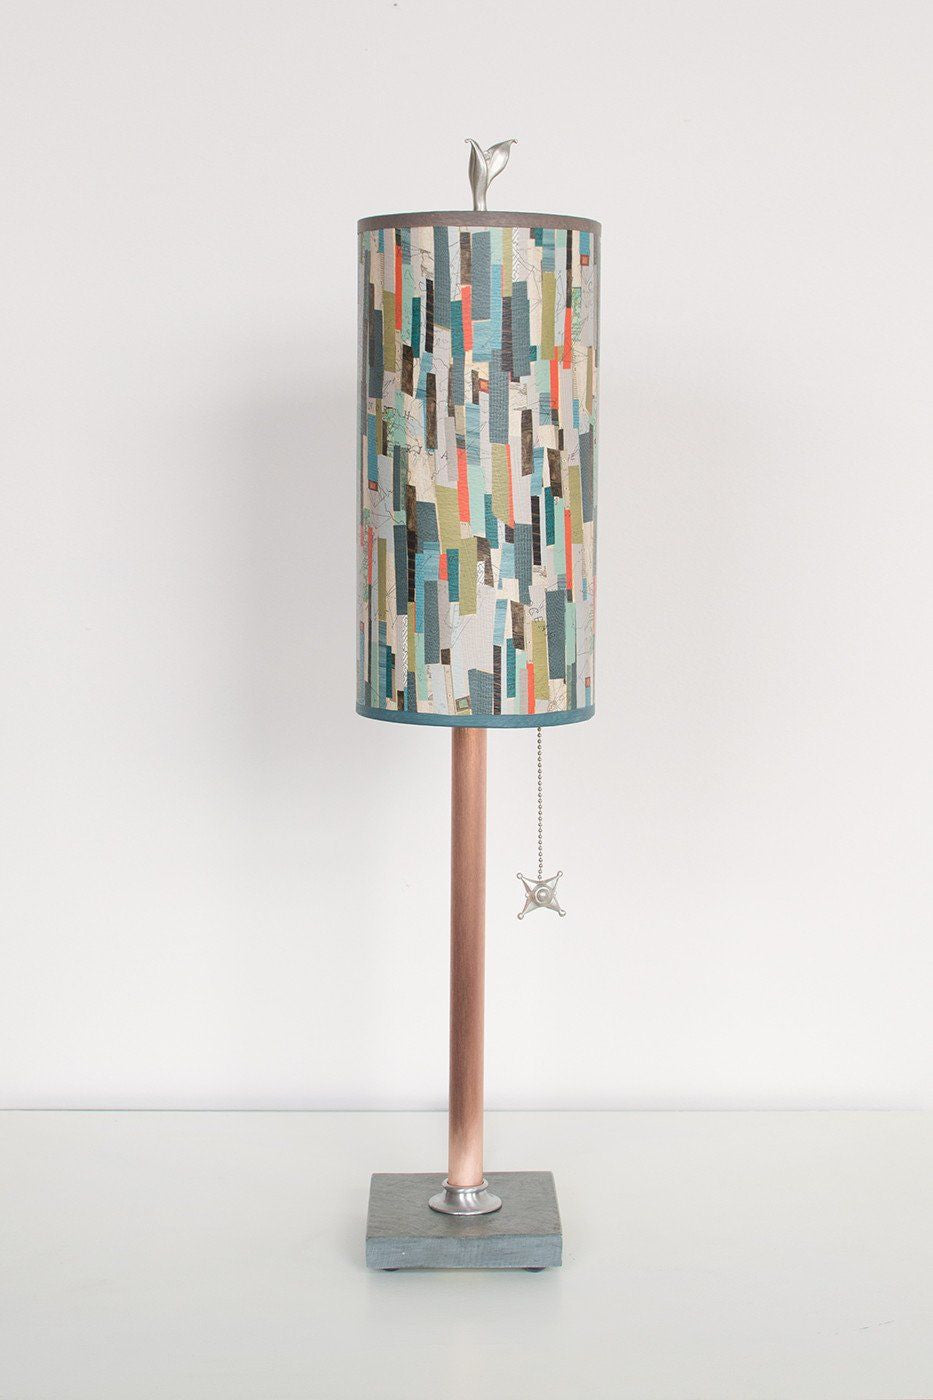 Copper Table Lamp on Vermont Slate with Small Tube Shade in Papers